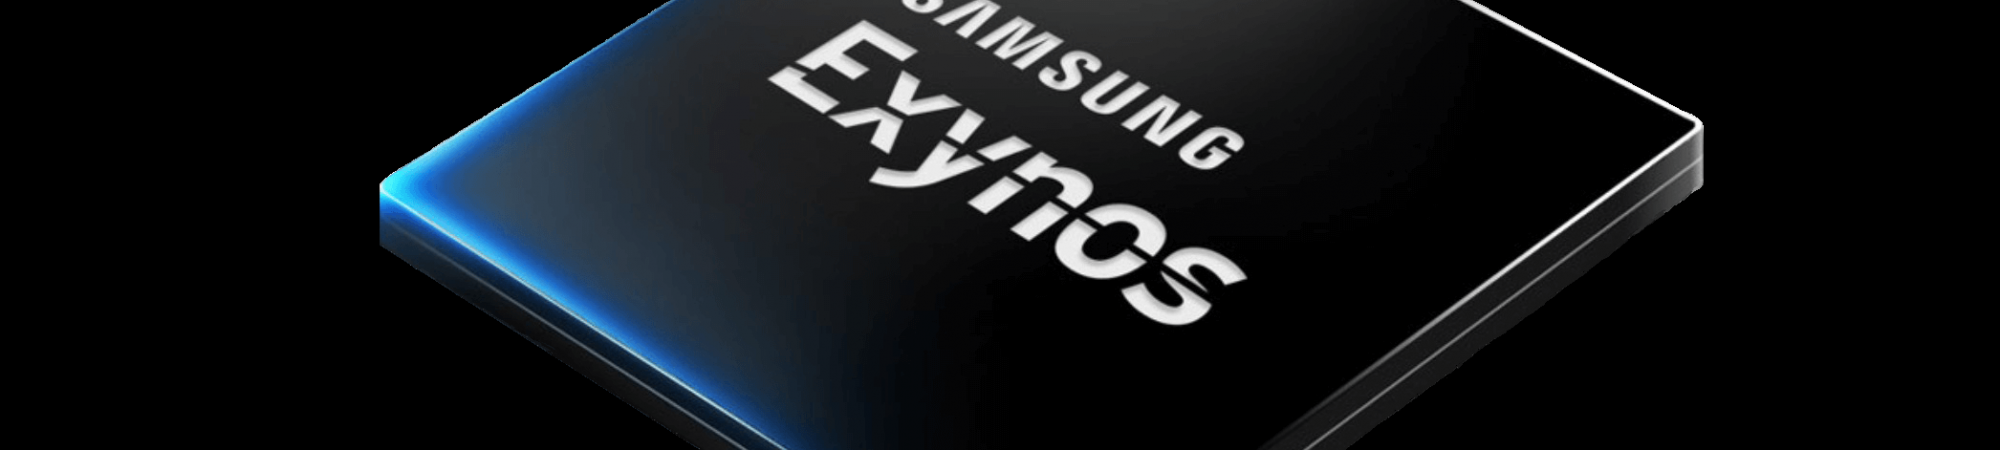 Samsung-Exynos-Processors-2000x450.png